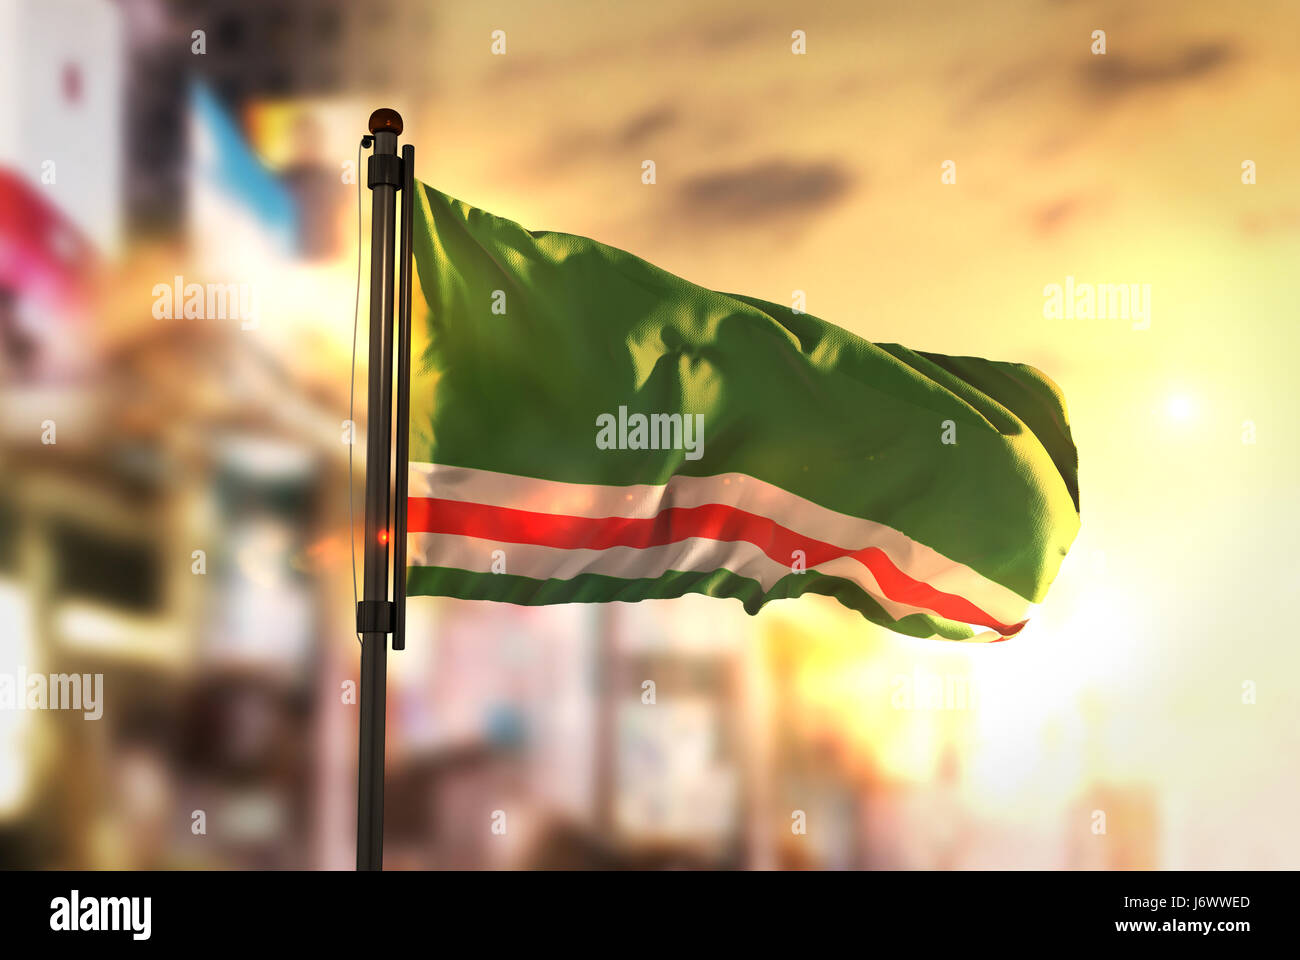 Chechen Republic of Ichkeria Flag Against City Blurred Background At Sunrise Backlight - Stock Image